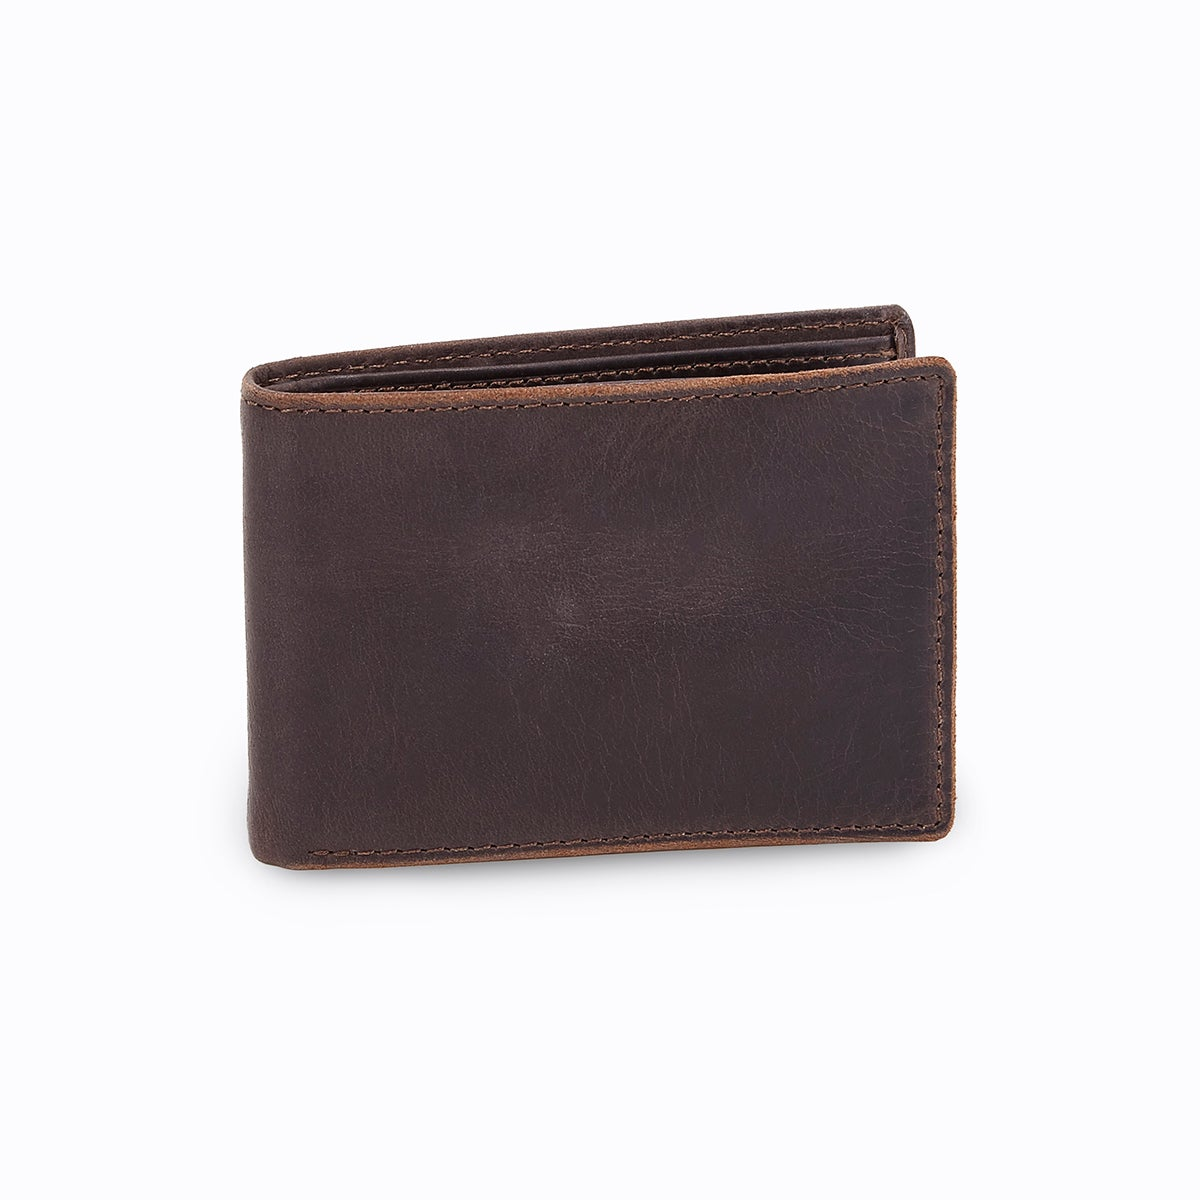 Men's ANDERSON bifold black wallet